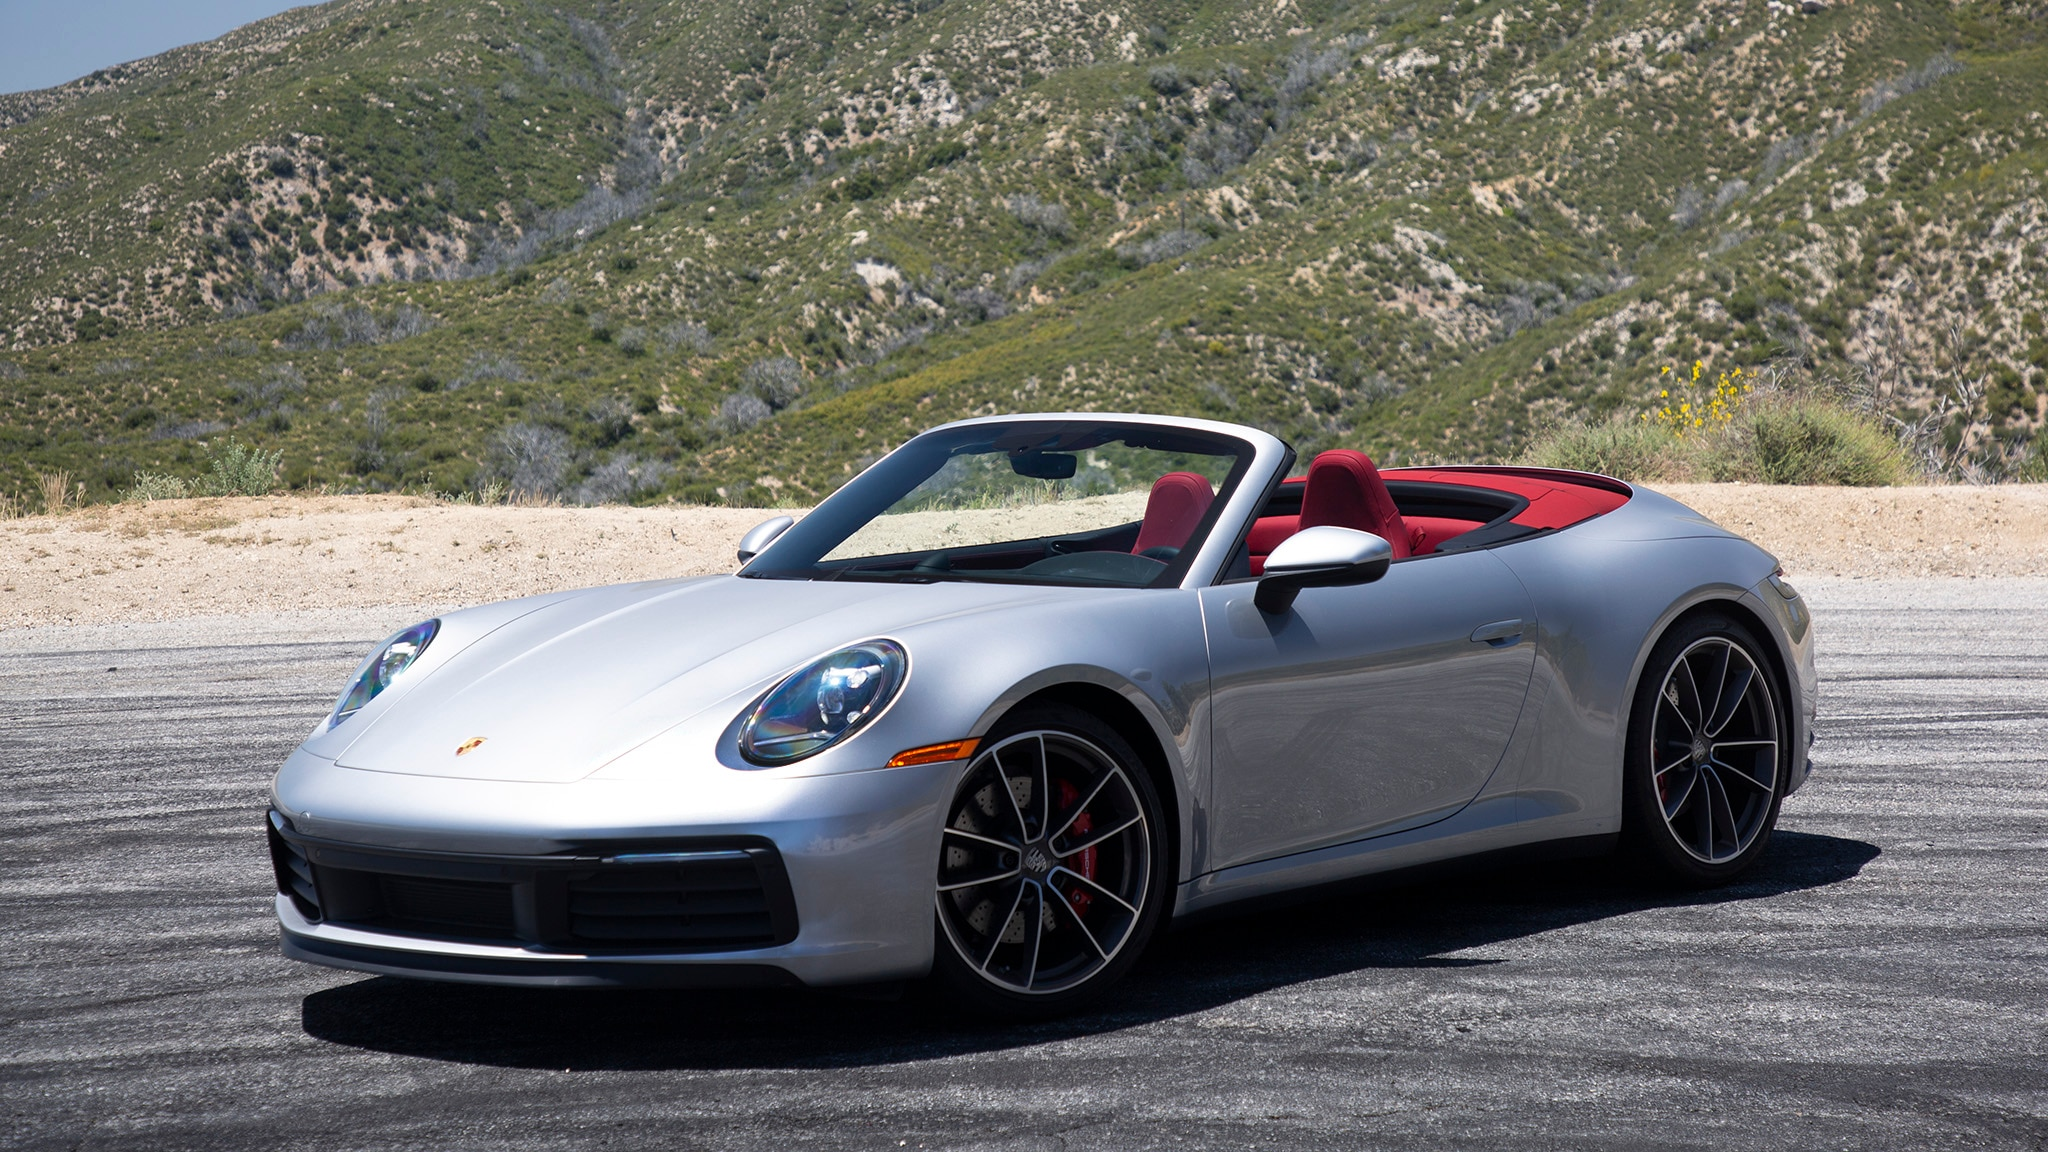 Why The 2020 Porsche 911 Carrera S Cabriolet Is The Ideal Realistic Weekend Weapon Technology Shout